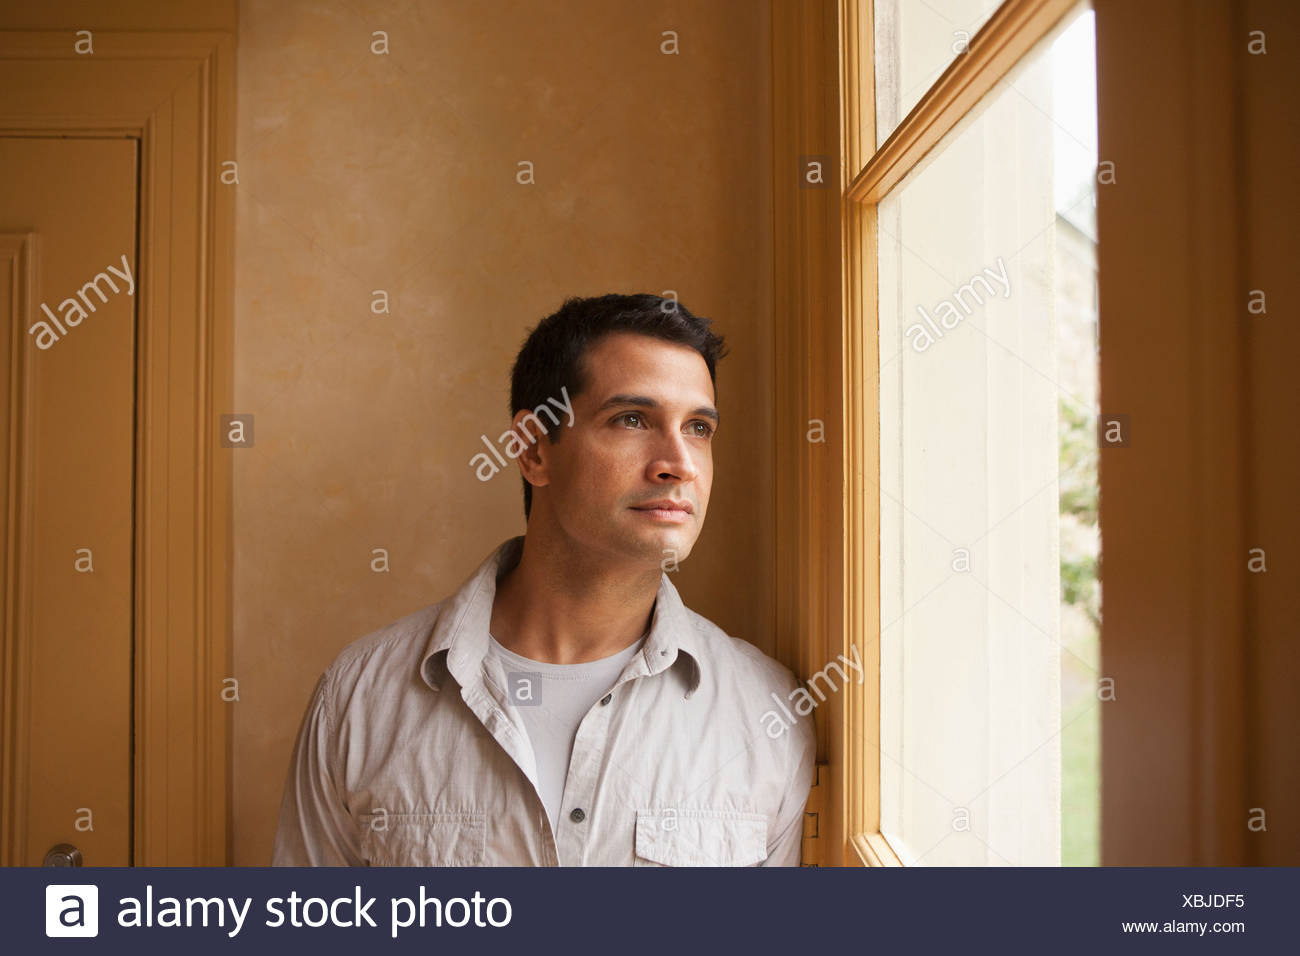 USA, New Jersey, Portrait of man looking out window - Stock Image